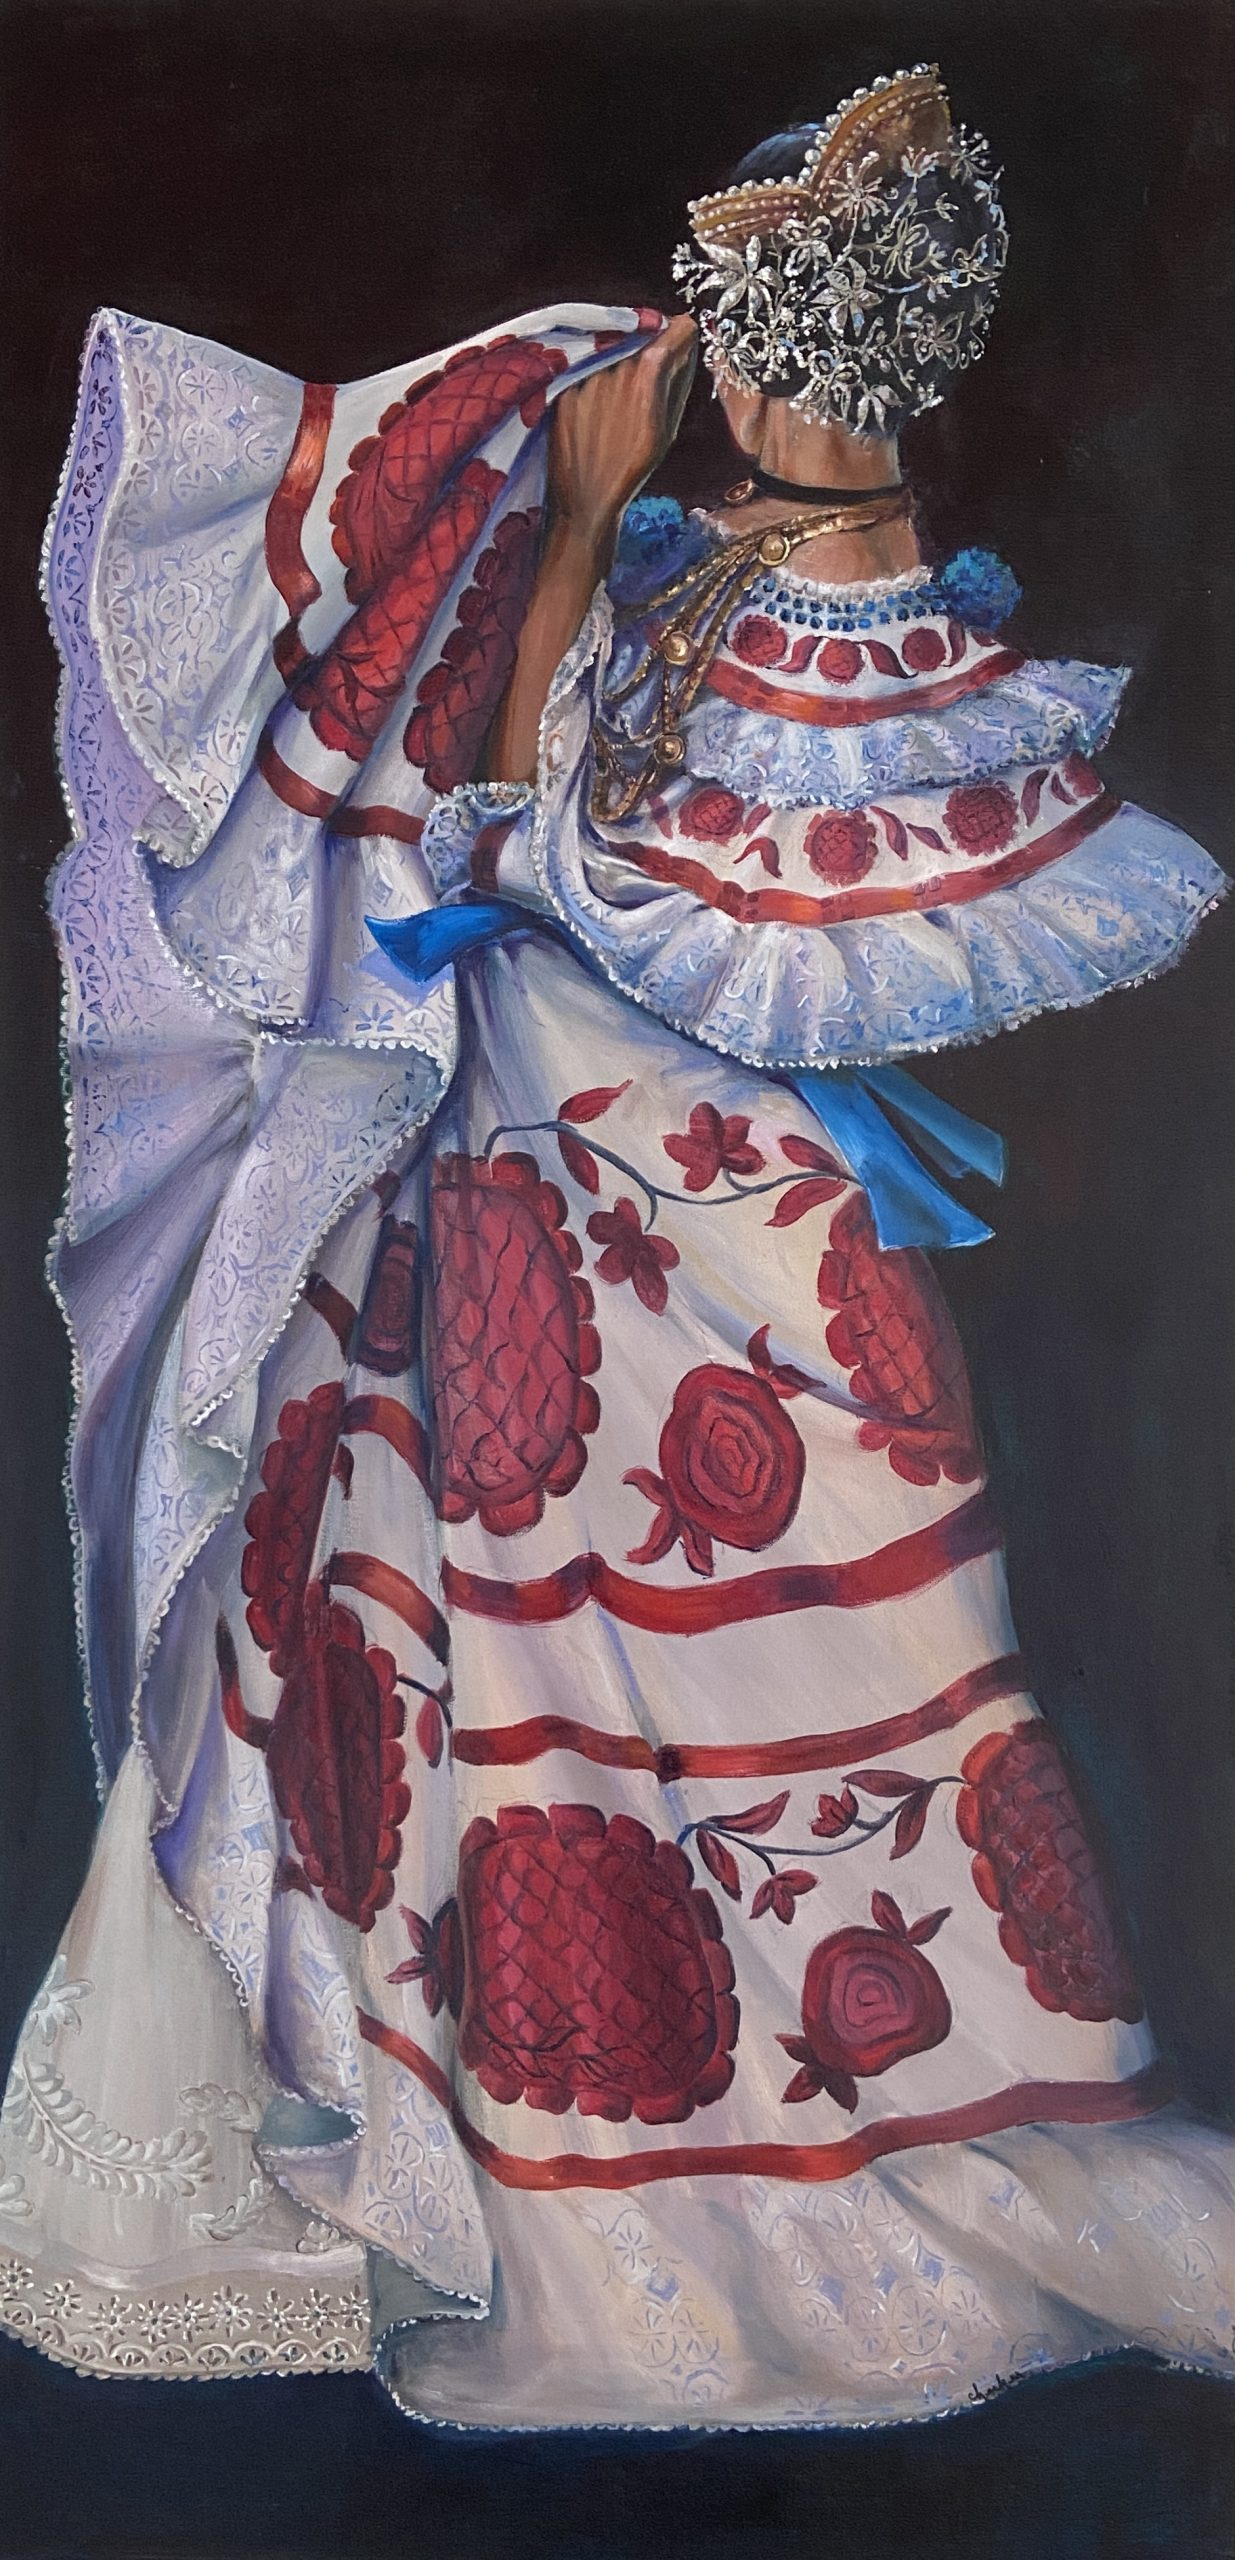 Janet Checker, Panama, 2002, Oil on canvas, 48 x 24 inches, Collection of the artist